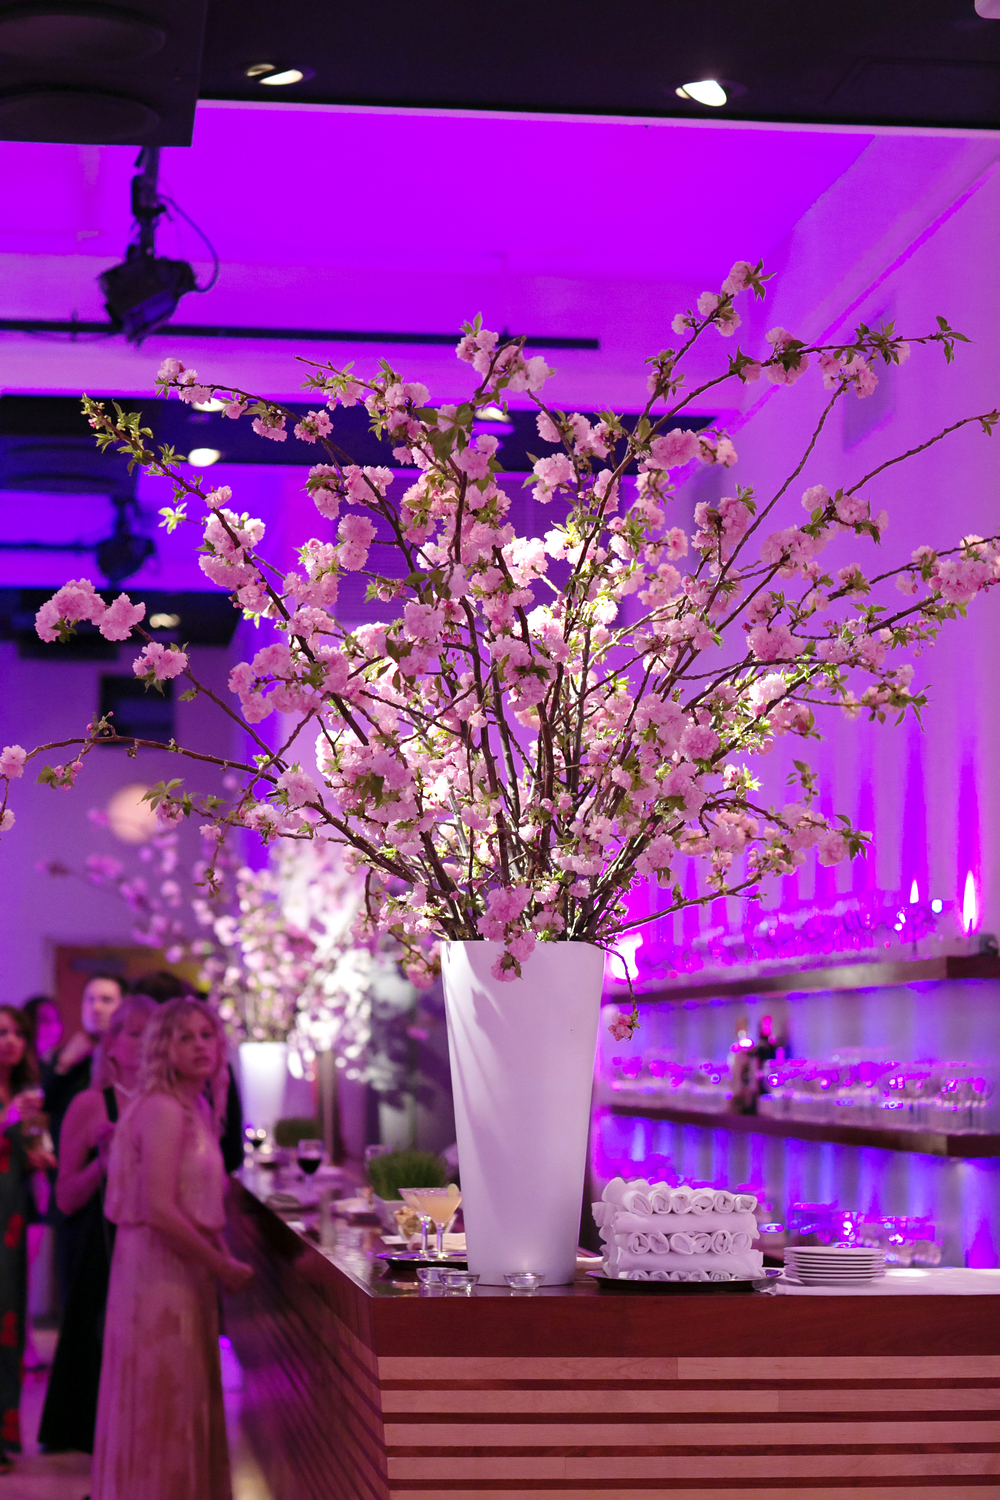 Flower decor as part of a bar mitzvah at HELEN MILLS Event Space and Theater